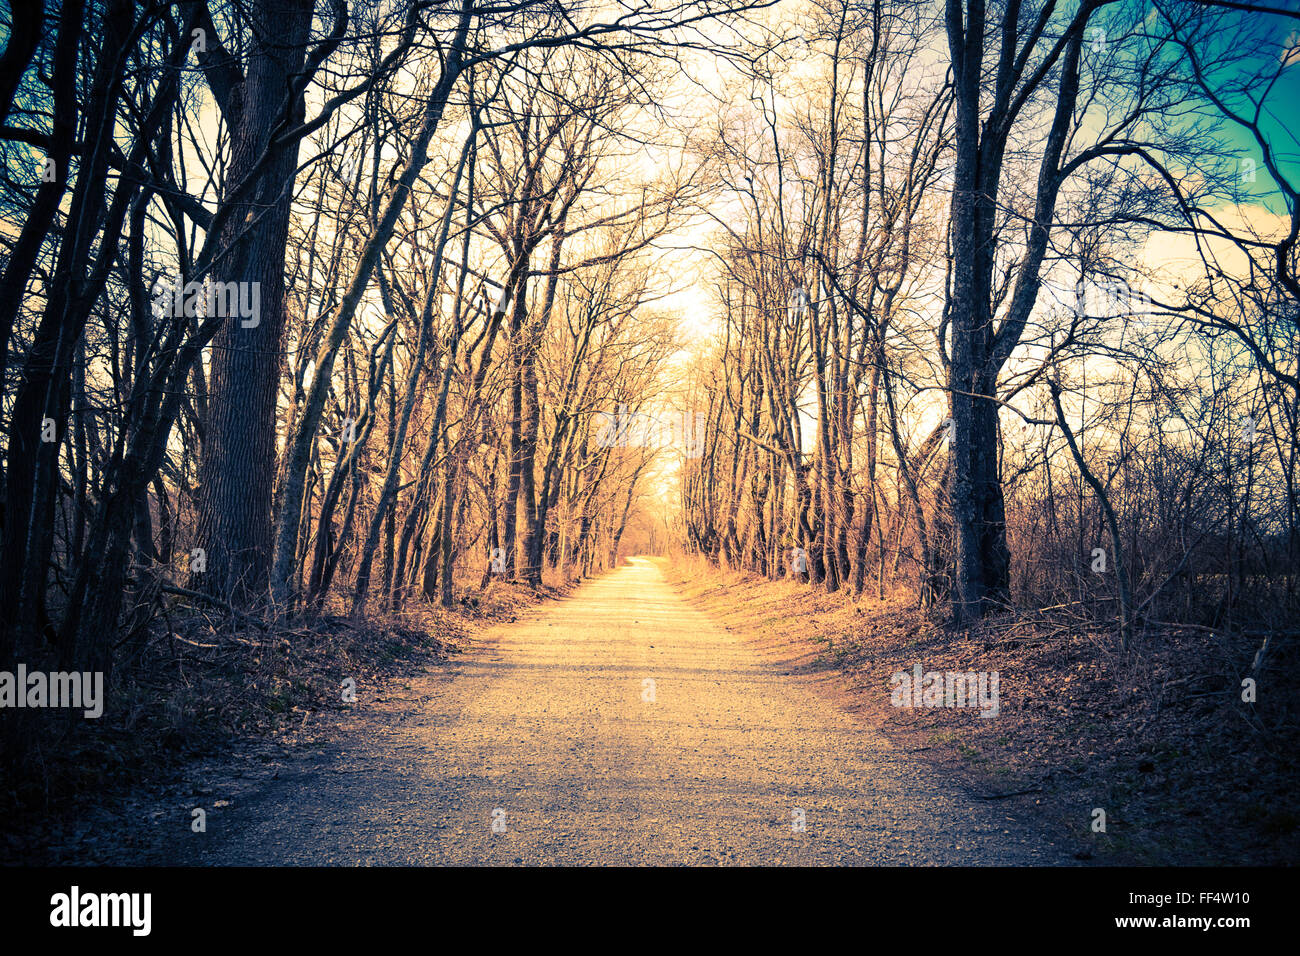 Tree-lined gravel country road. Vintage, retro look. Direction or path concept. - Stock Image